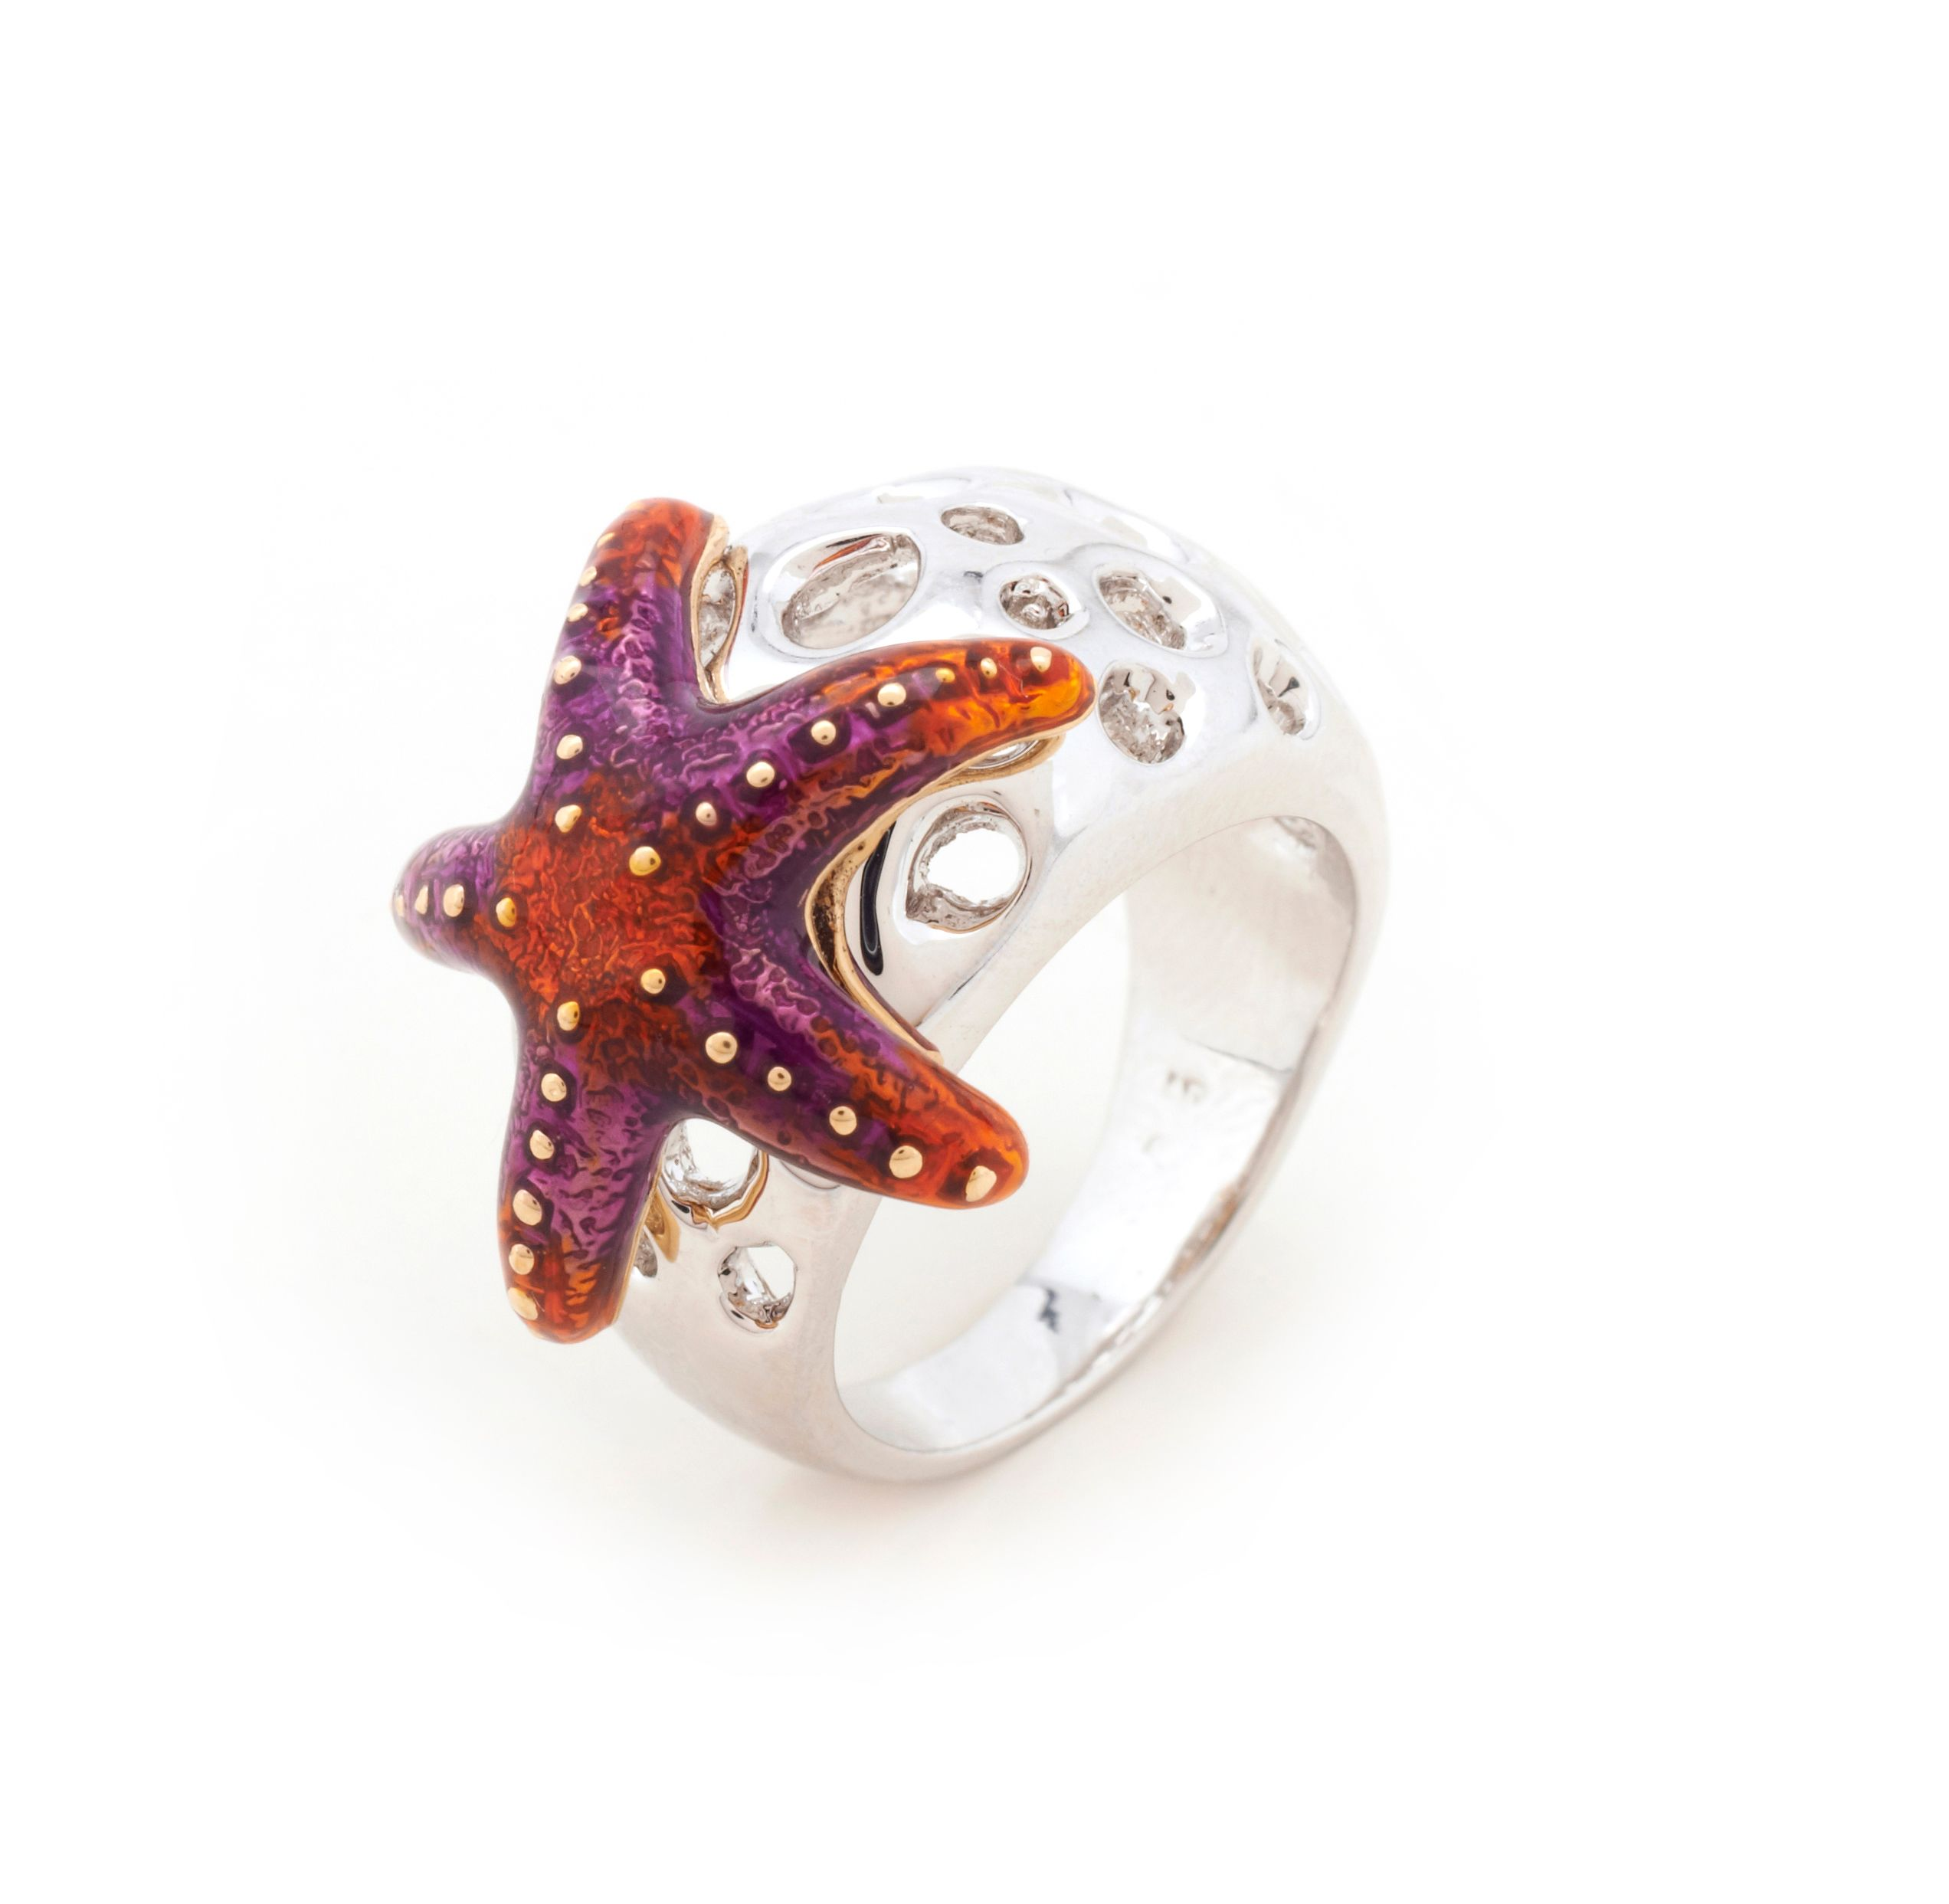 Aquatic starfish ring